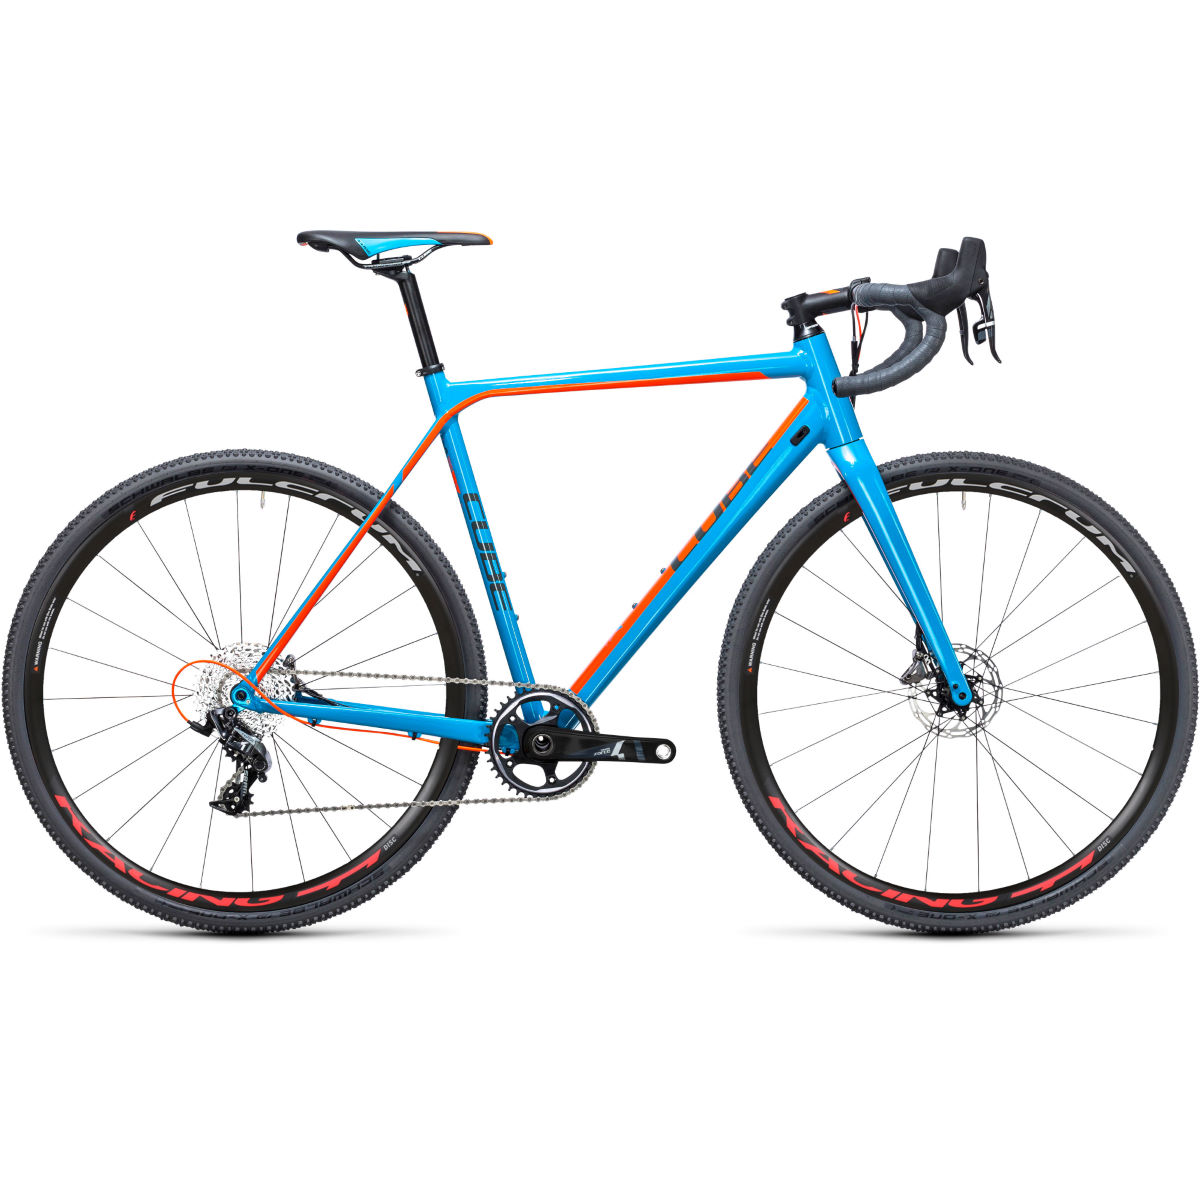 Vélo Cube Cross Race SLT Cyclo X - 56cm (22'') 700c 11 S